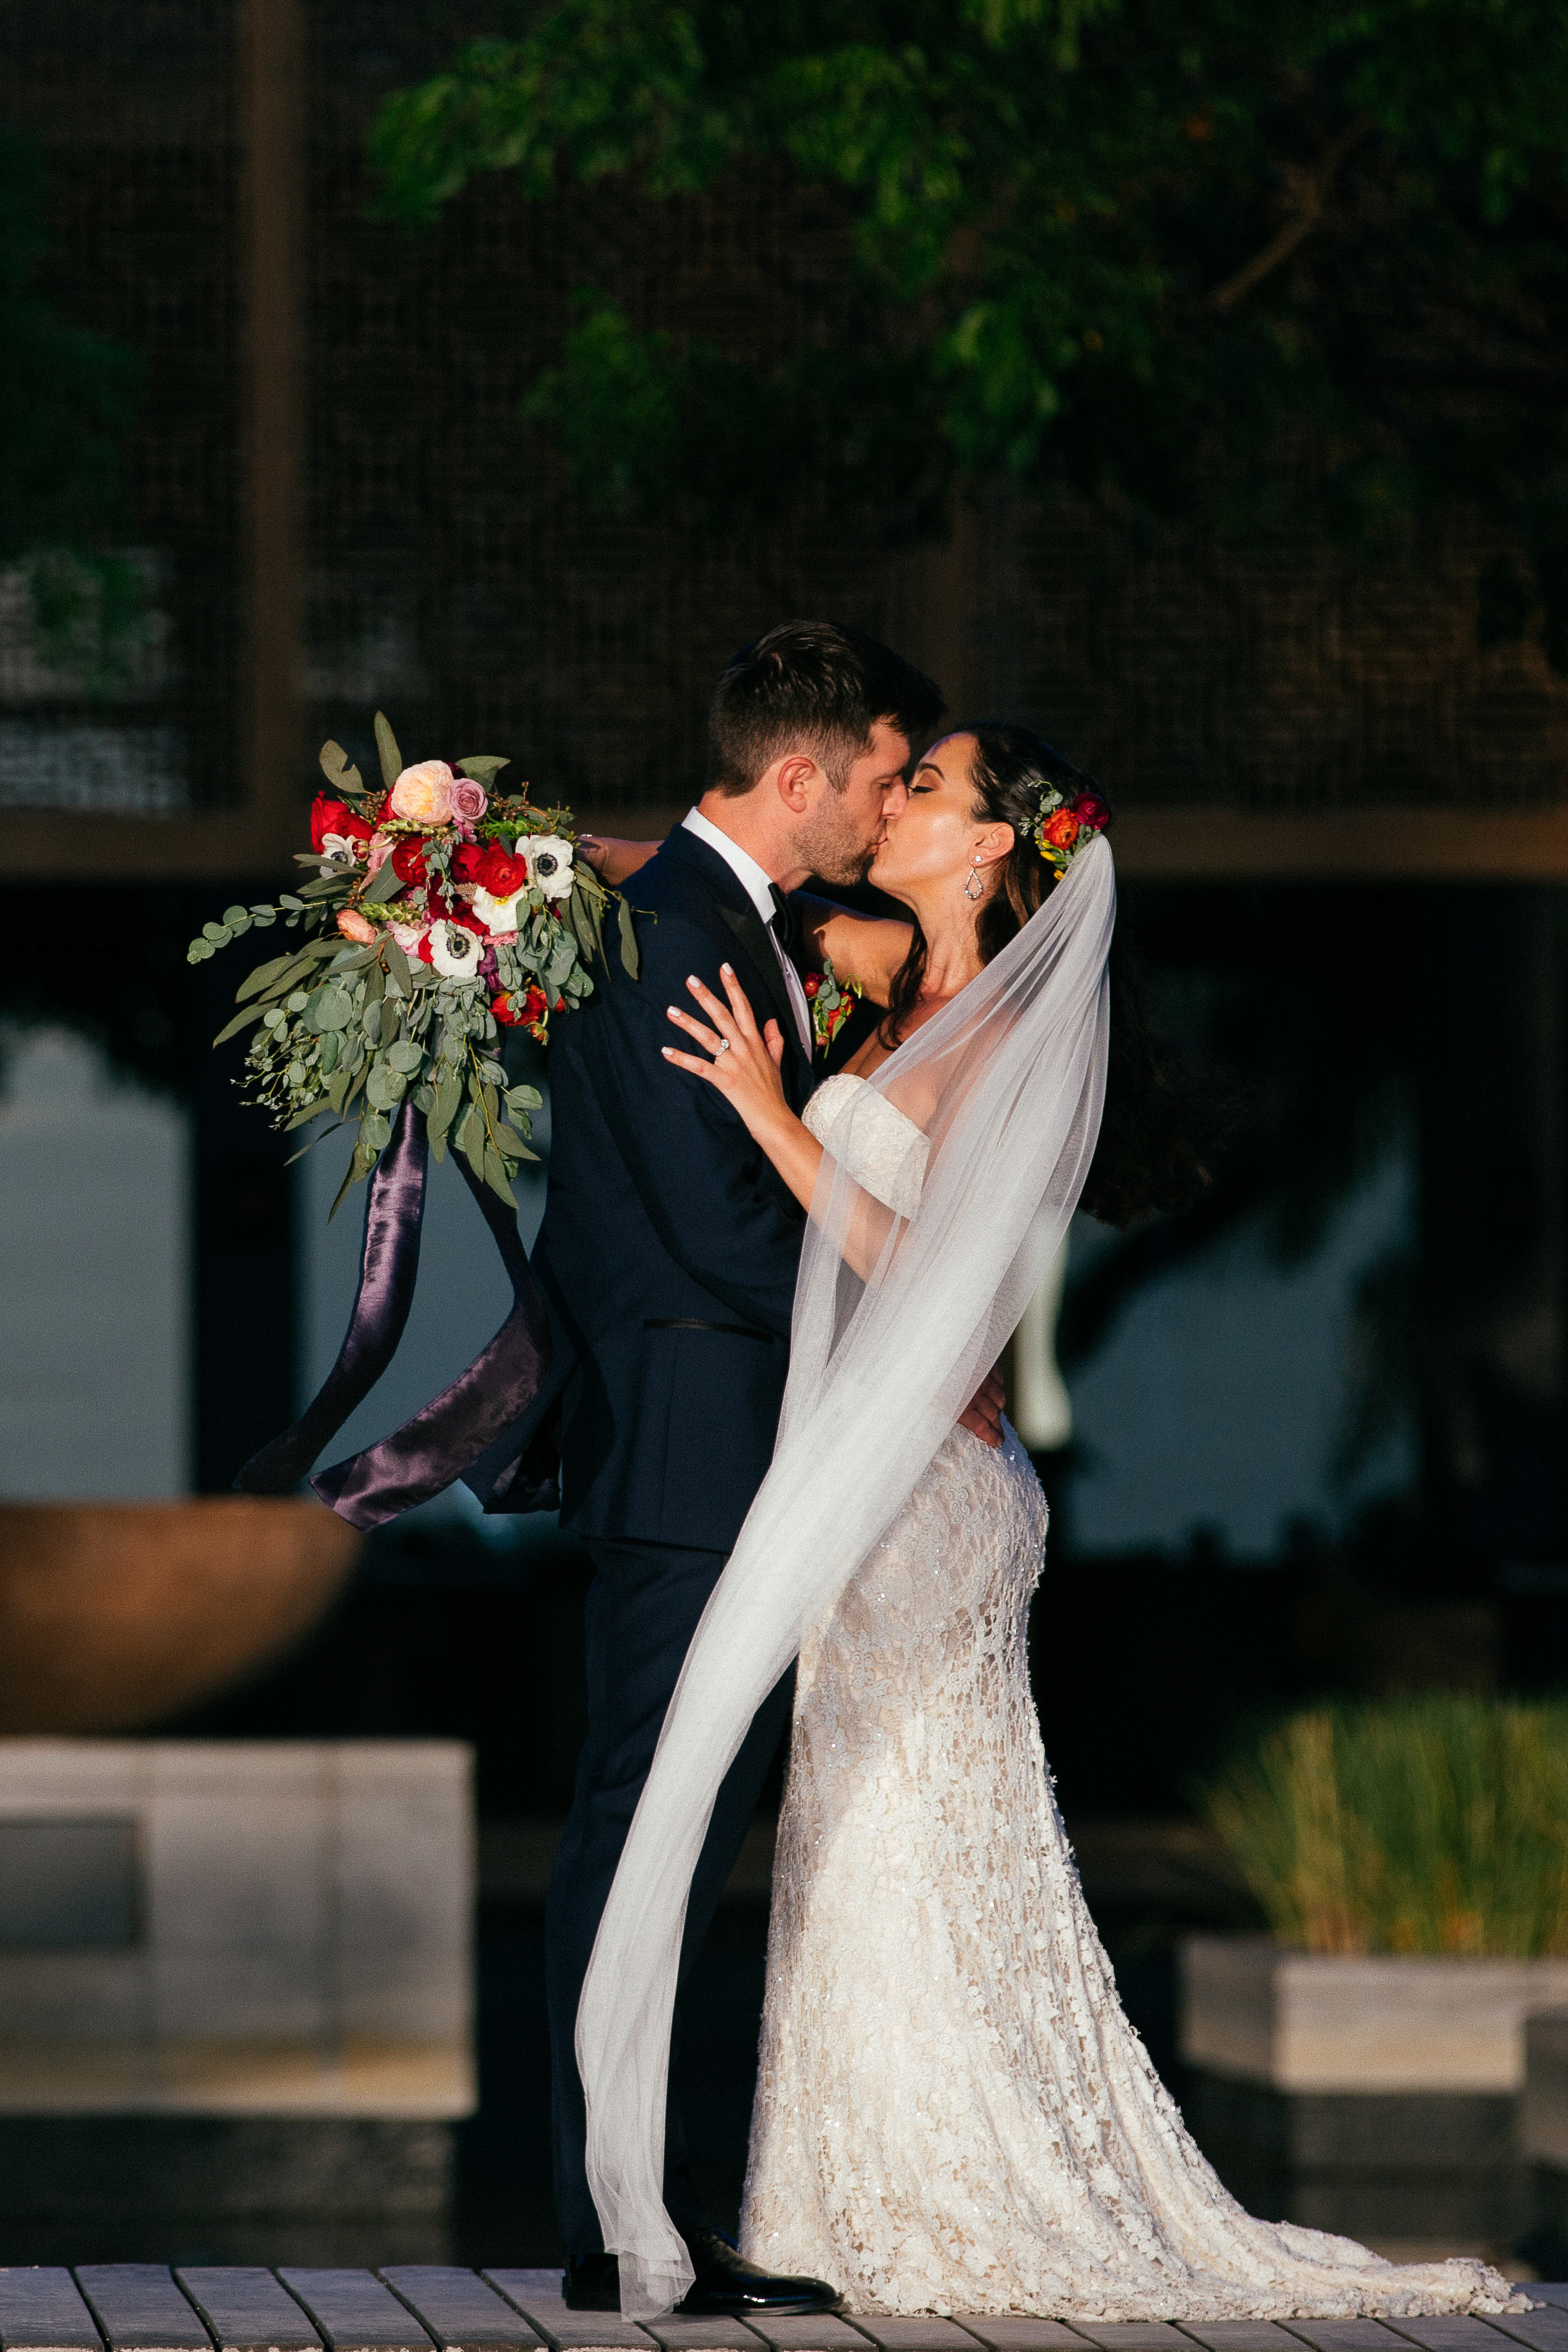 KRISTEN & JAY WEDDING | RIVIERA MAYA – MEXICO